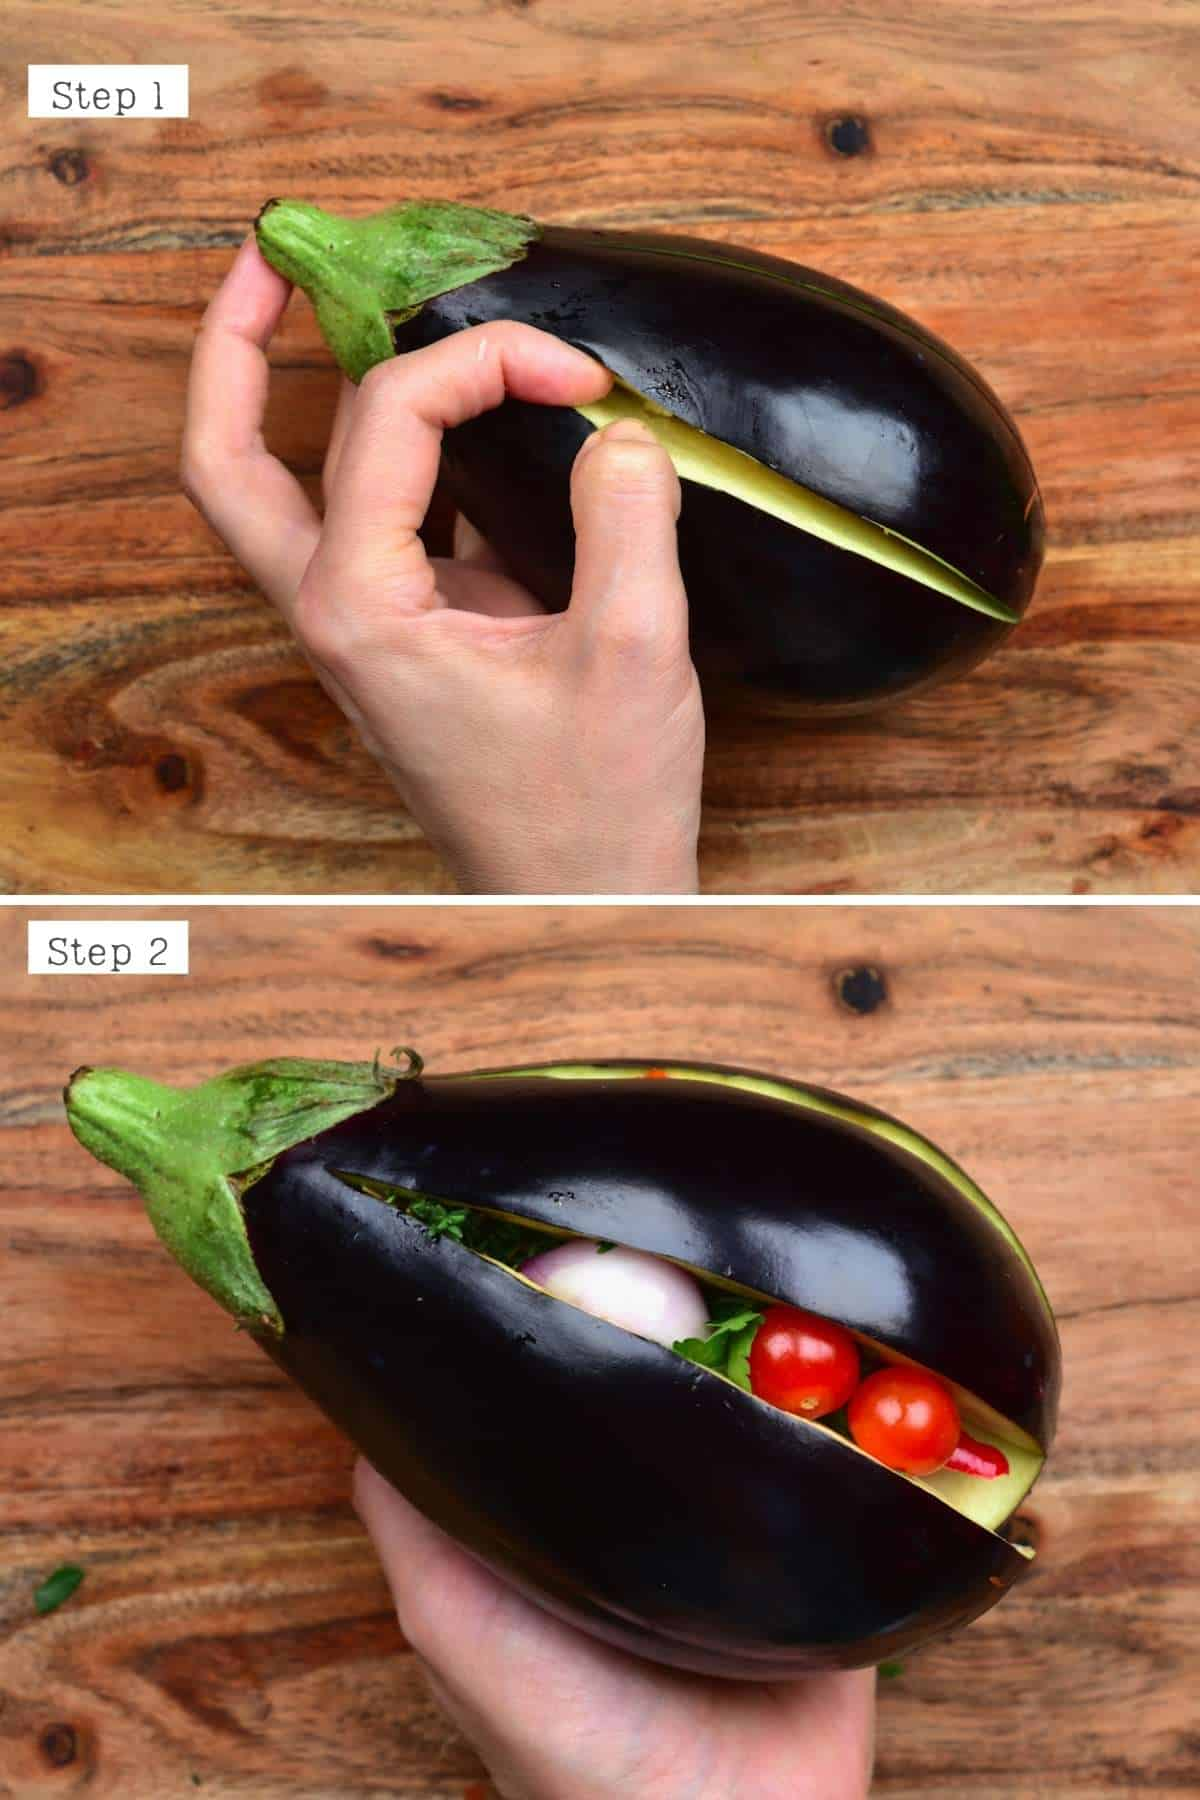 Steps for stuffing an eggplant